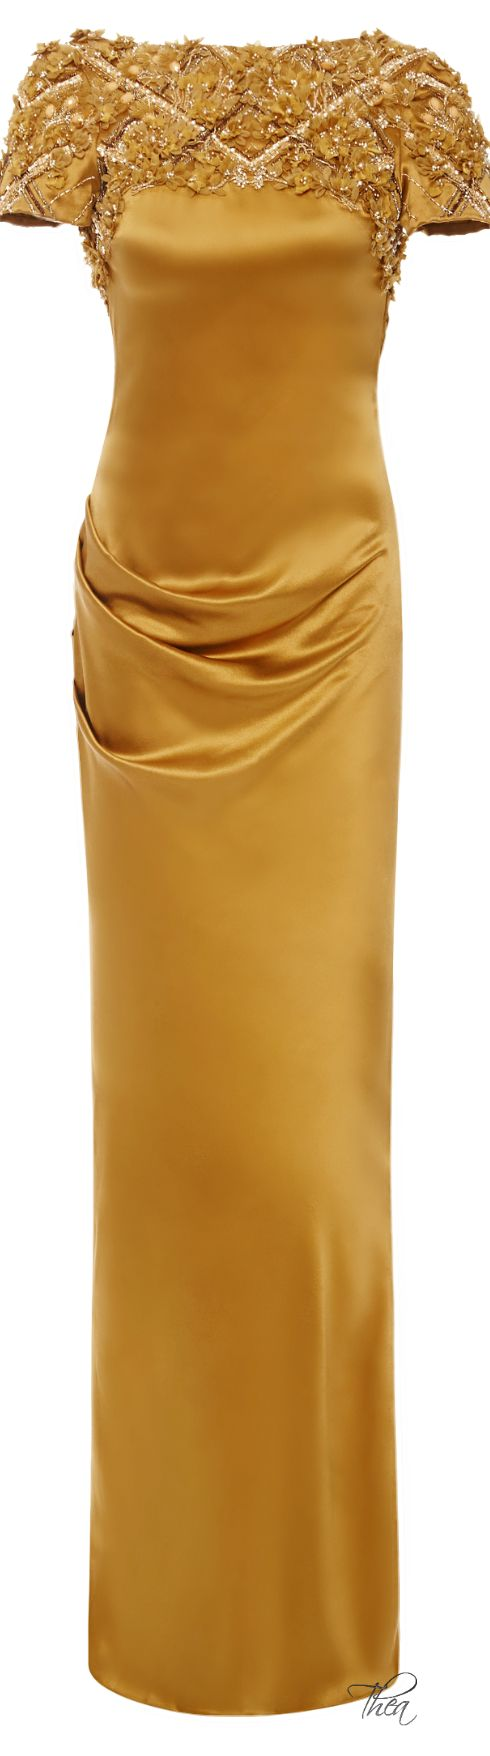 Marchesa ● Fall 2014, Saffron Silk Crepe Gown- ~LadyLuxury~